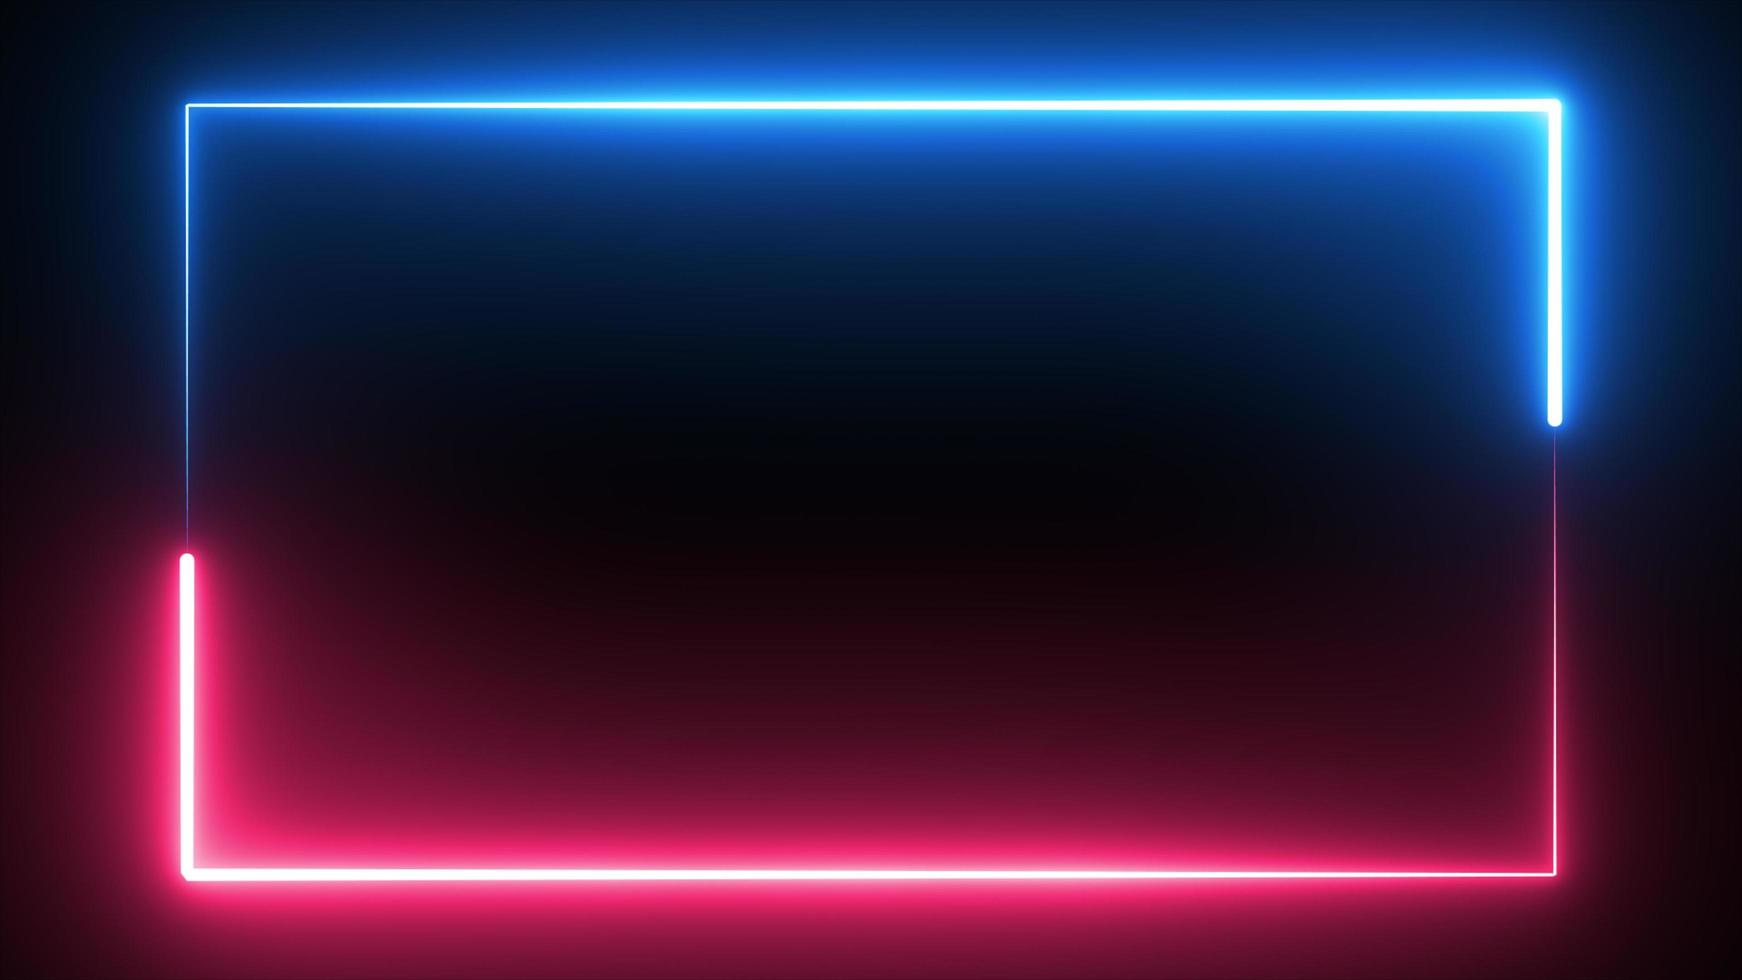 Saber neon glow color flowing rectangle background photo